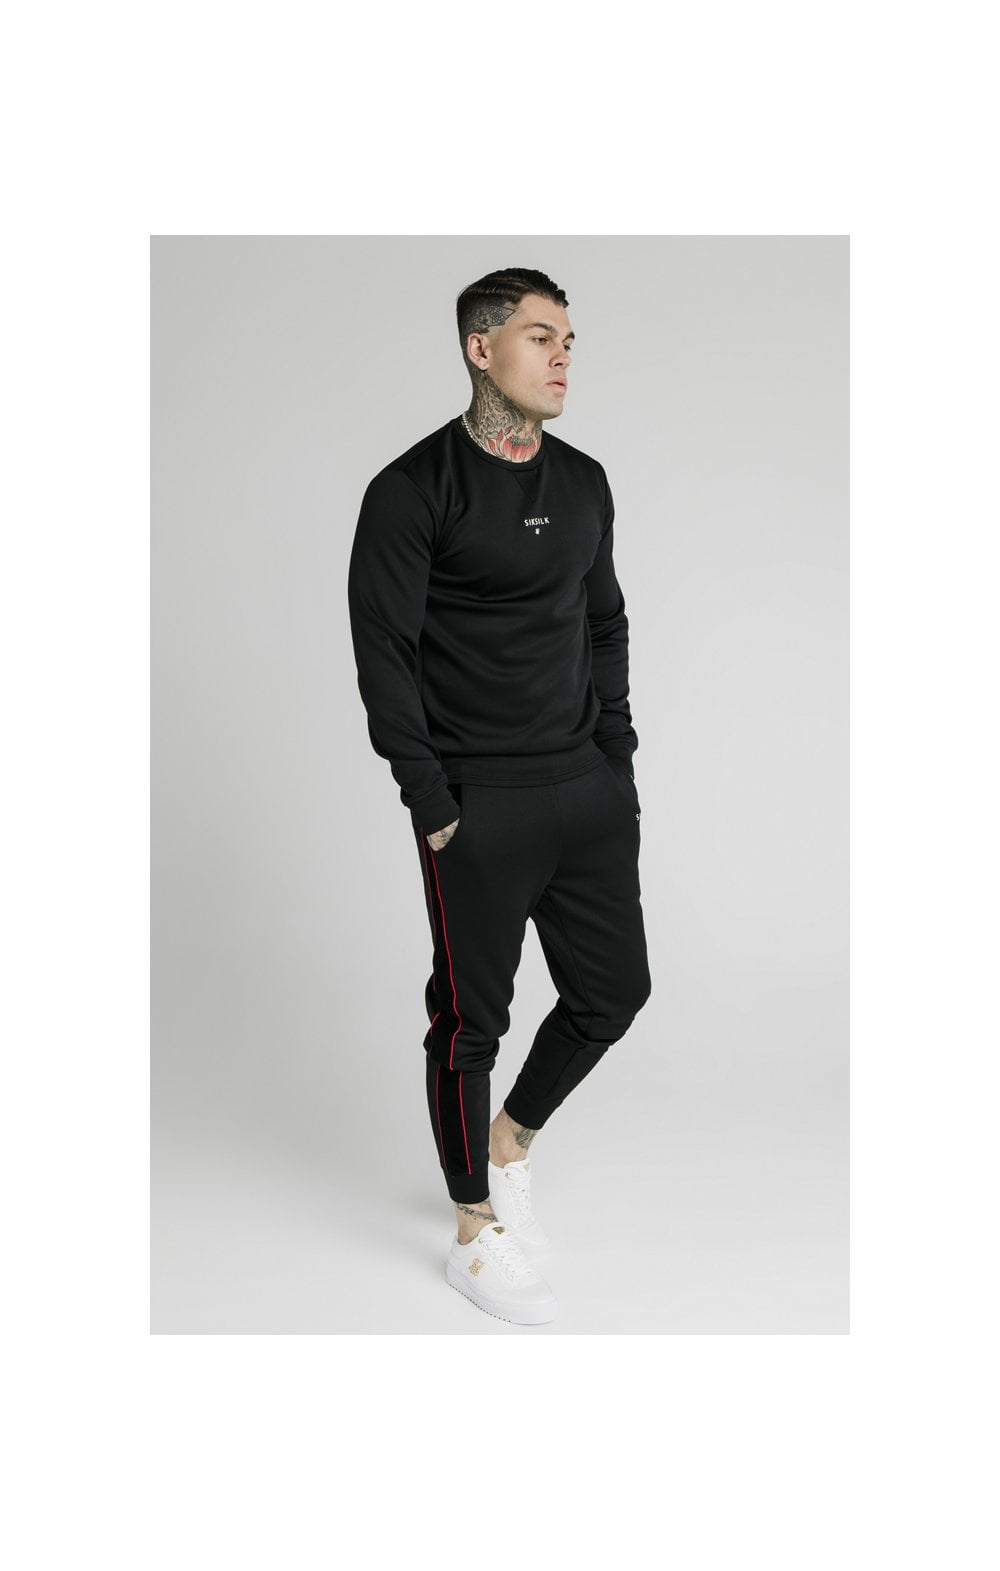 SikSilk Imperial Crew Neck Sweater - Black (4)